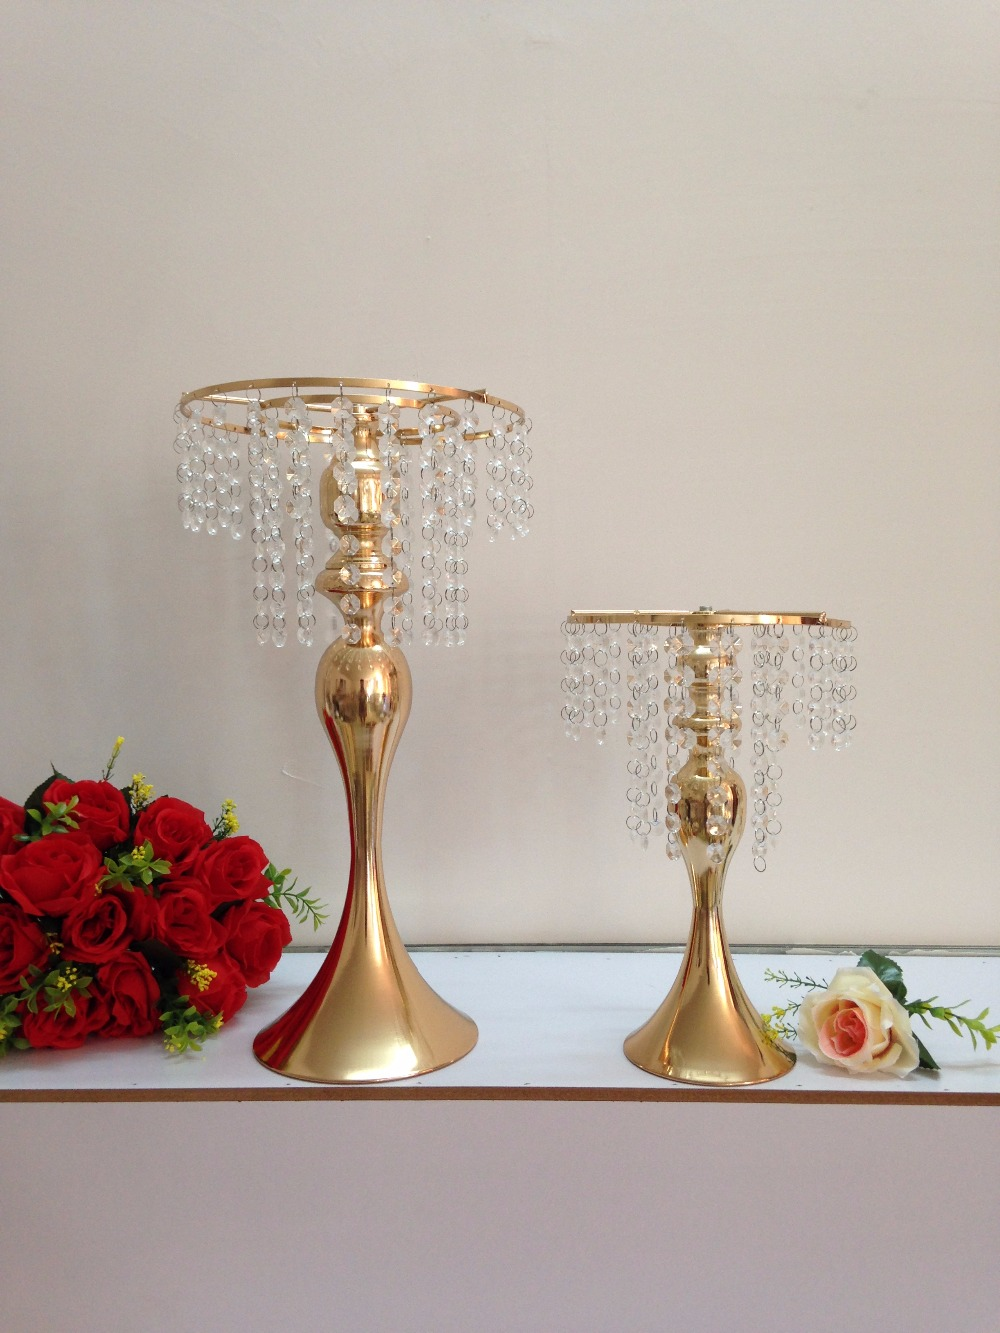 Cm quot gold wedding table chandelier flower